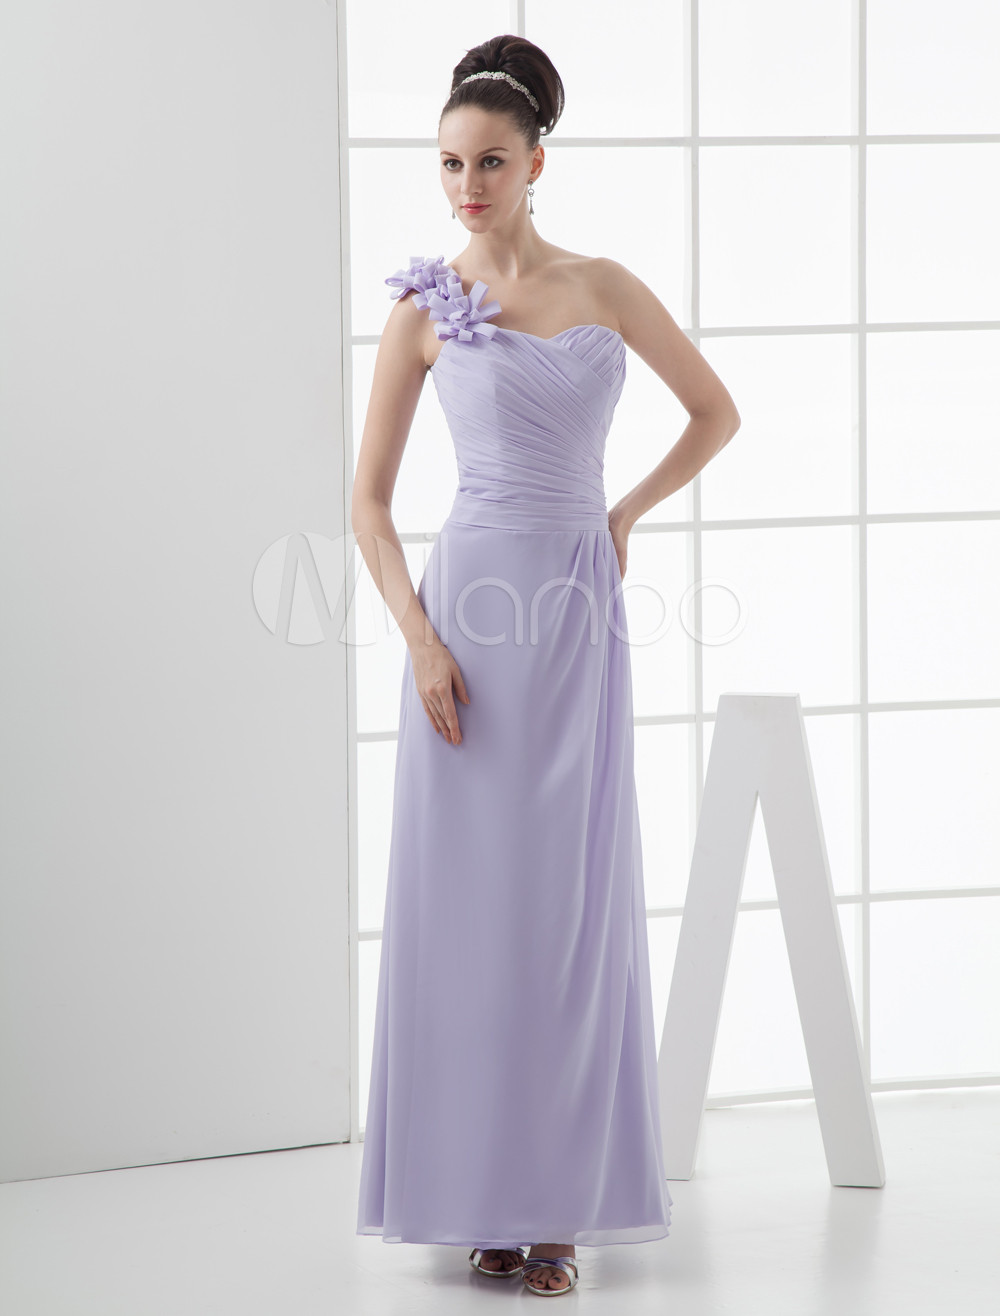 Lavender Floor Length One-Shoulder Matte Satin Chiffon Bridesmaid Dress